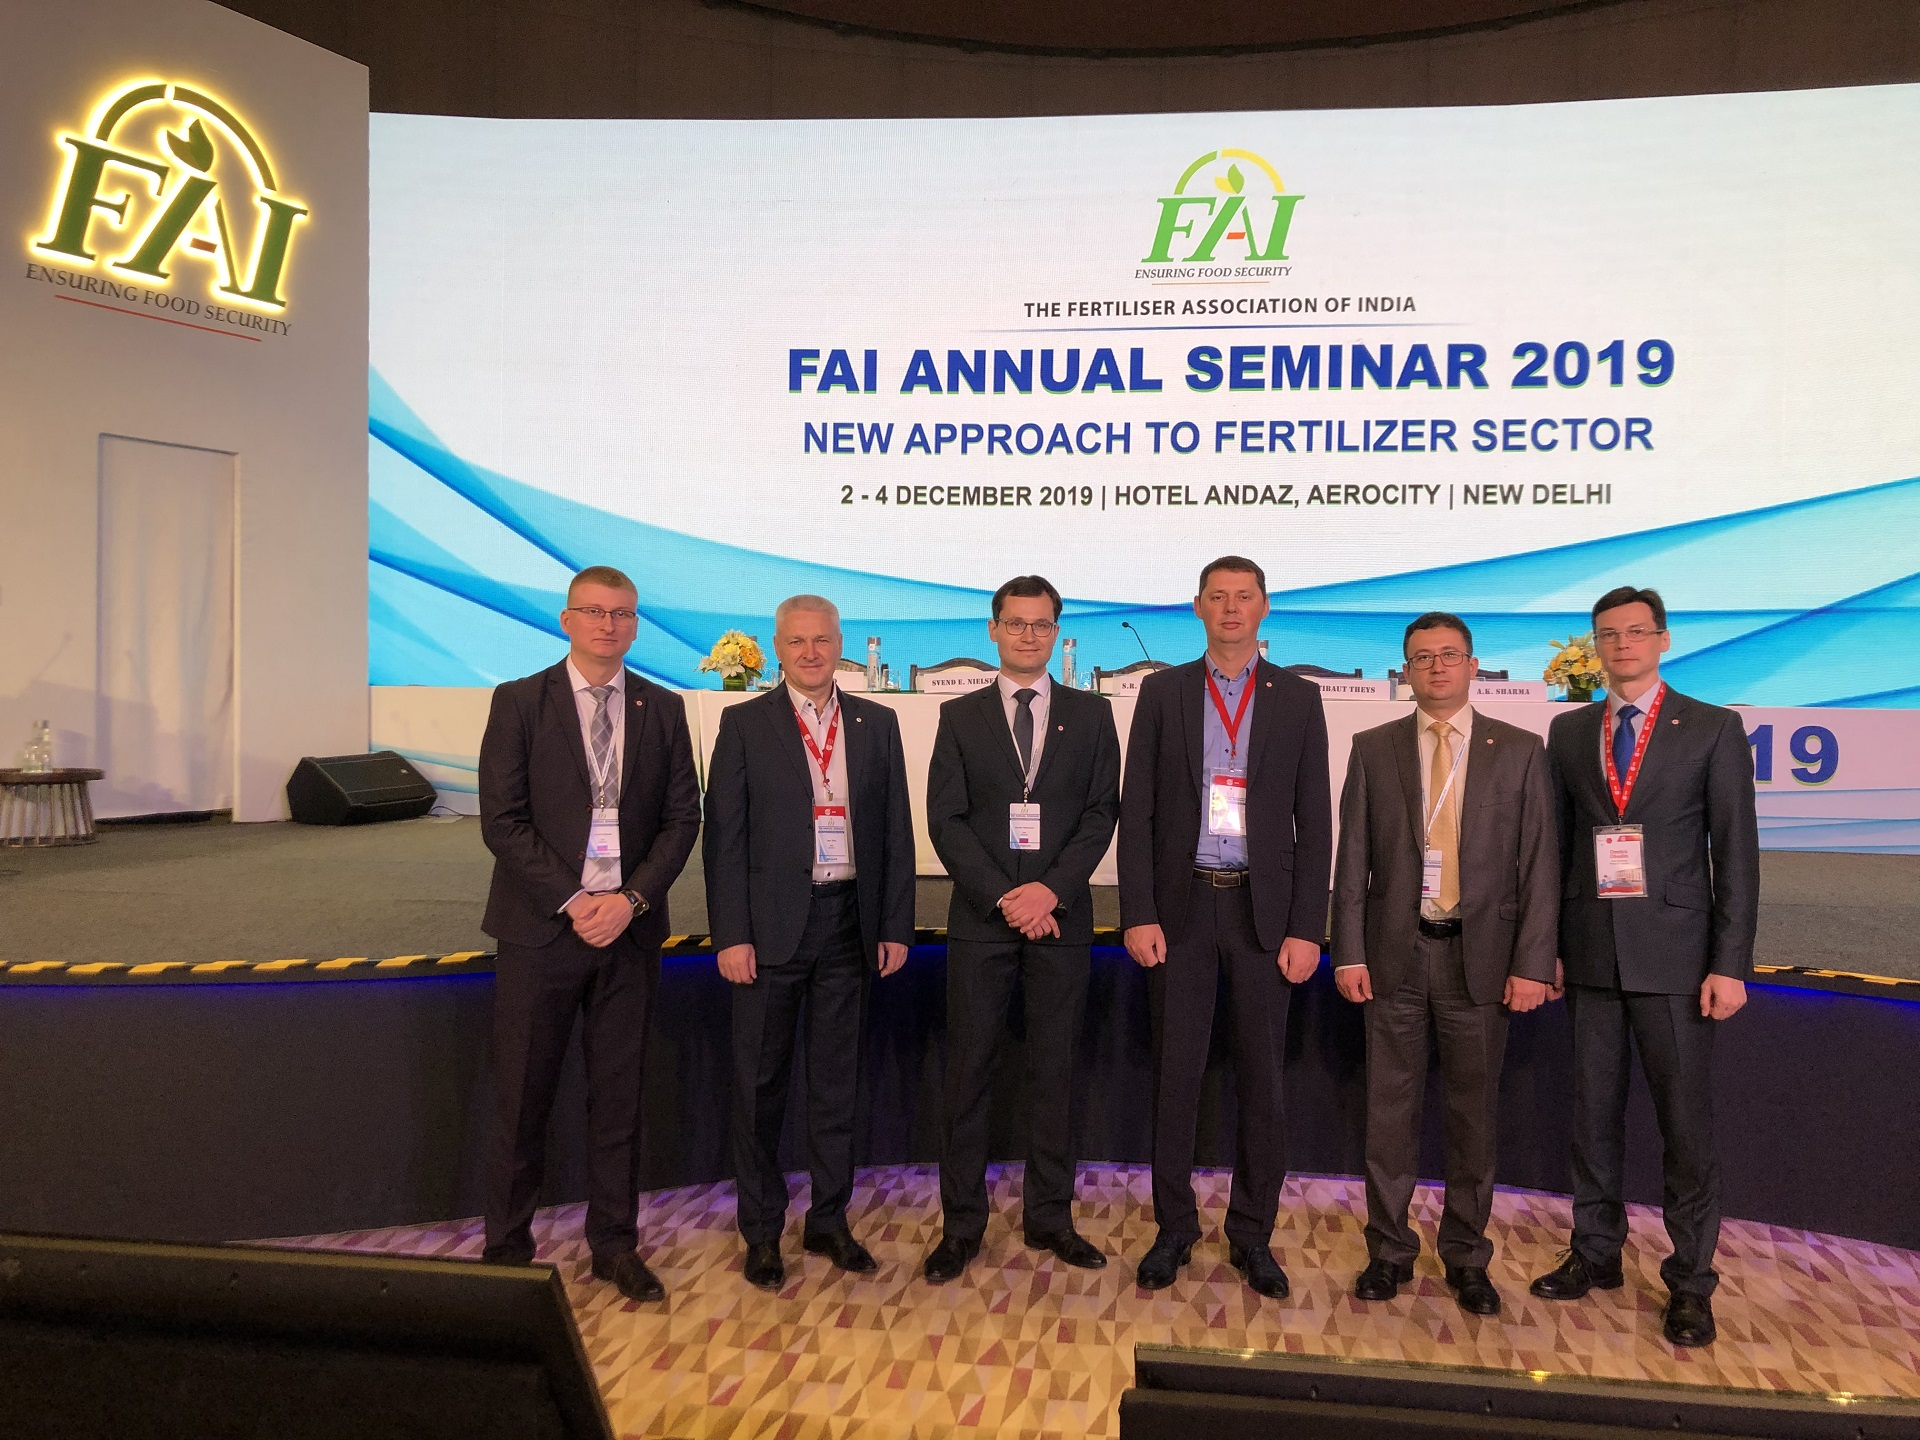 On December 2-4th, 2019, NIIK's delegation took part in the Fertilizer Association India Annual seminar 2019 in New Delhi, India